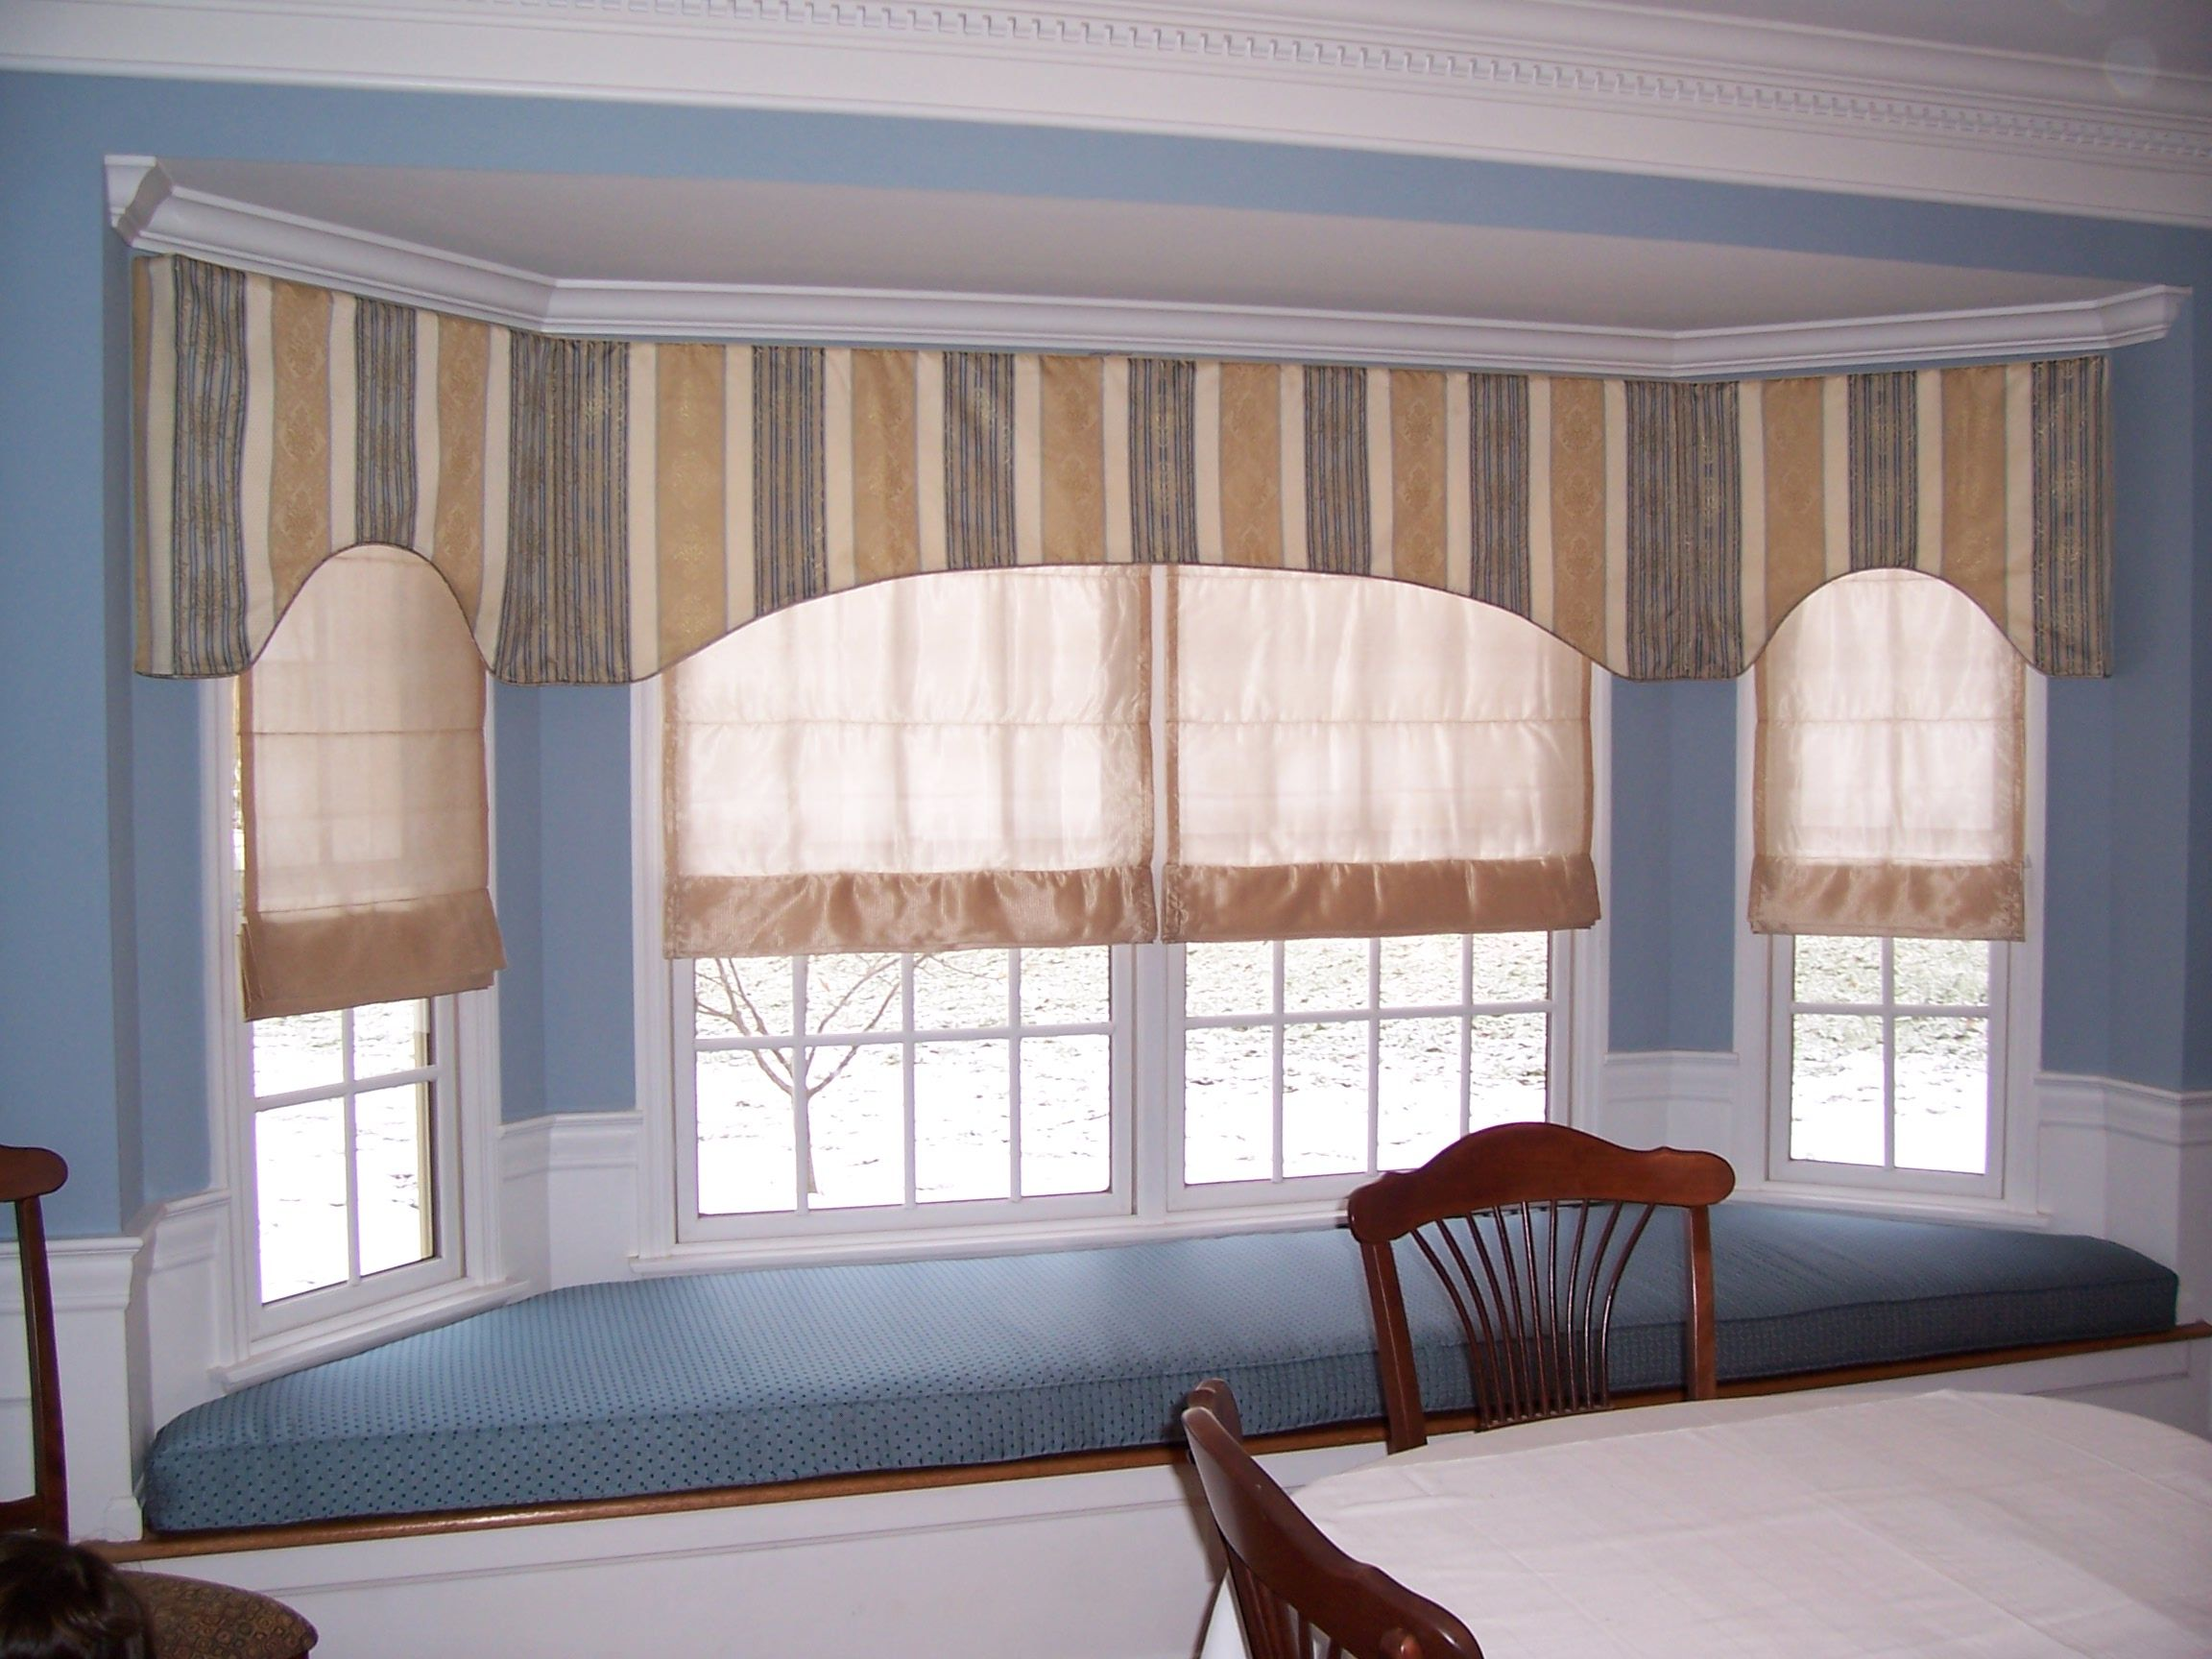 Continuous Flat Valance Along Large Bay Window, With Sheer Roman Shades  Underneath. Coordinating Fabric